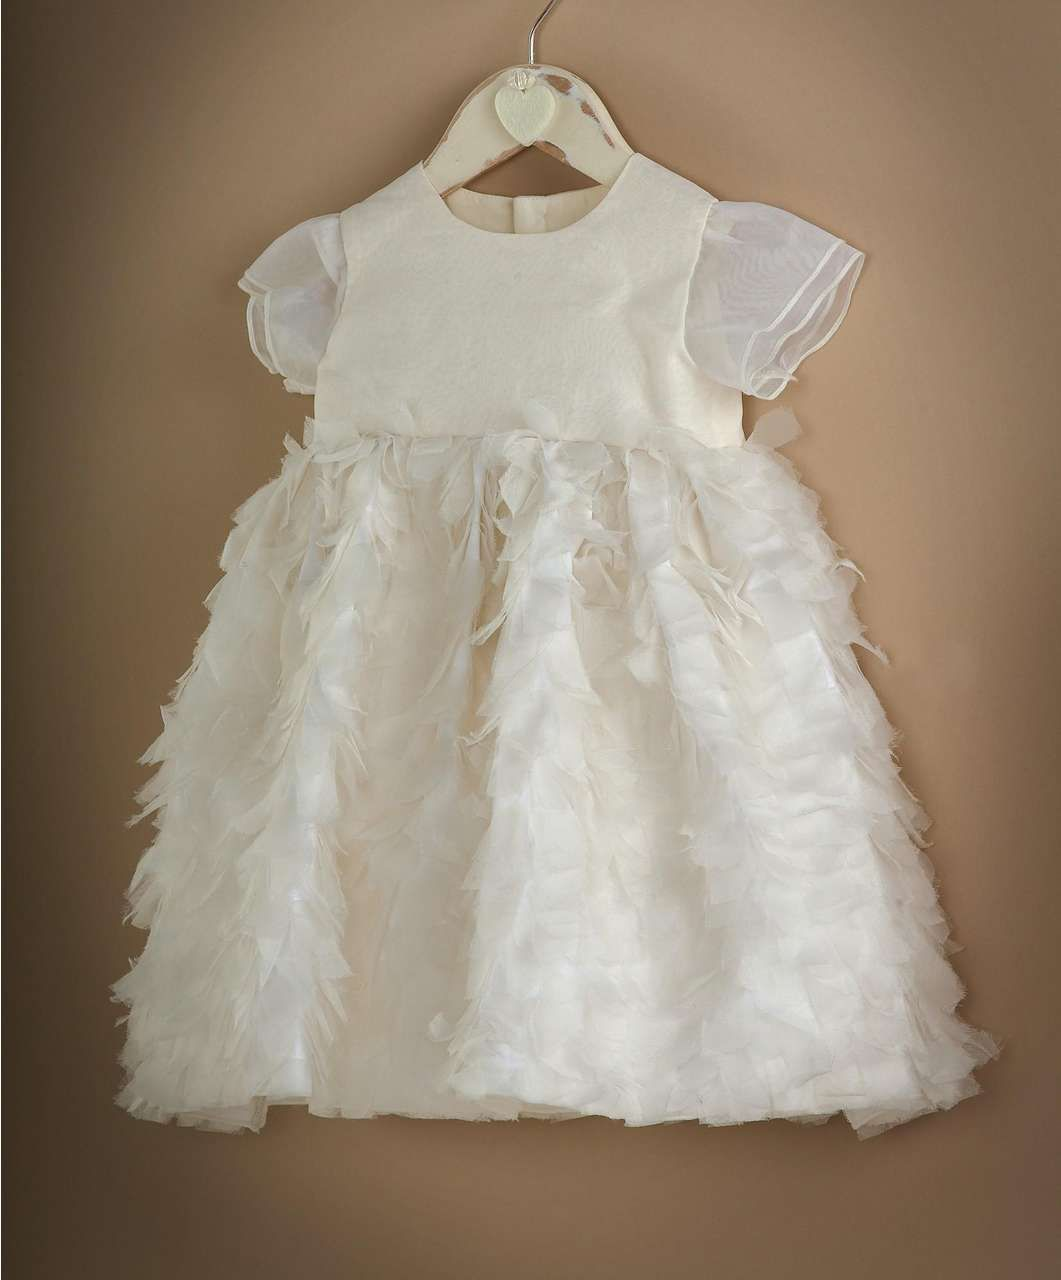 Realistic 0-3 Months Girls Dress From Mamas And Papas Clothes, Shoes & Accessories